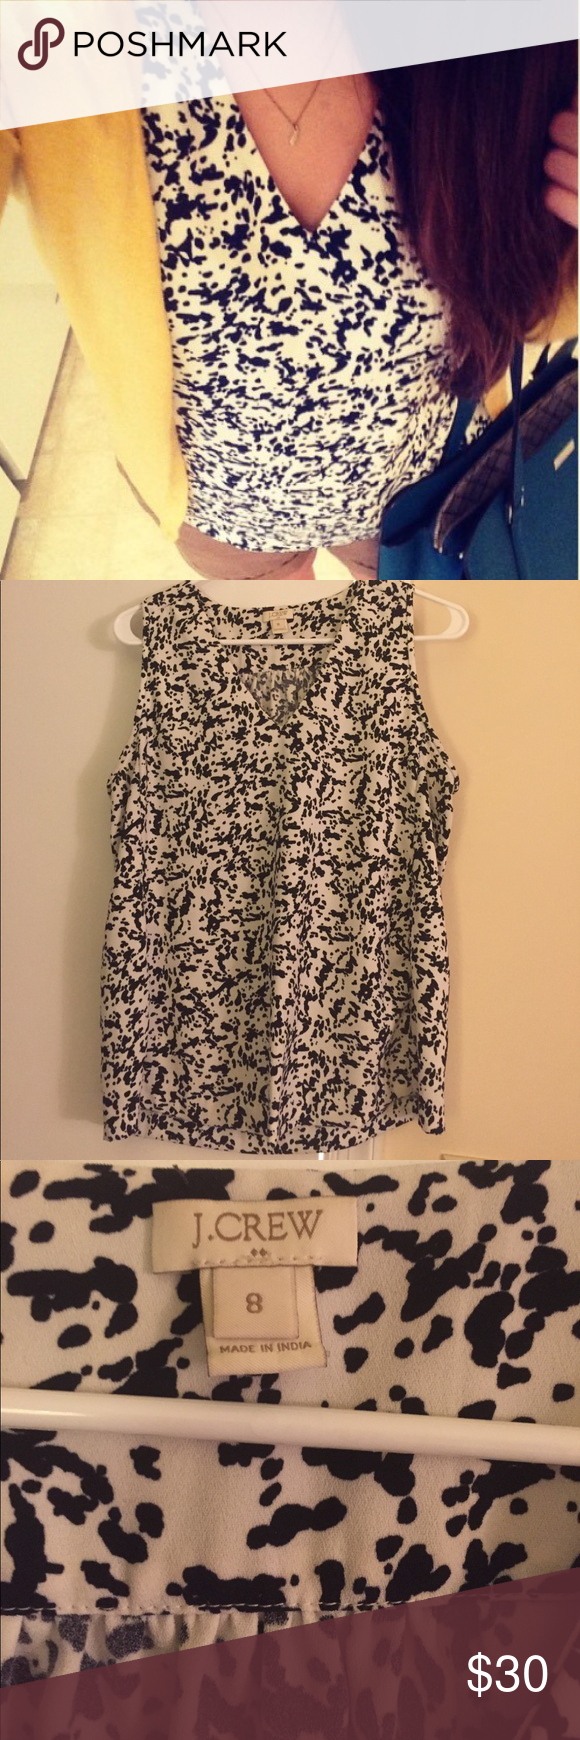 J.Crew Printed Sleeveless Top, Size 8 Sleeveless top with V neckline. Great work shirt! White and navy pattern, heavier weight and well made. J. Crew Tops